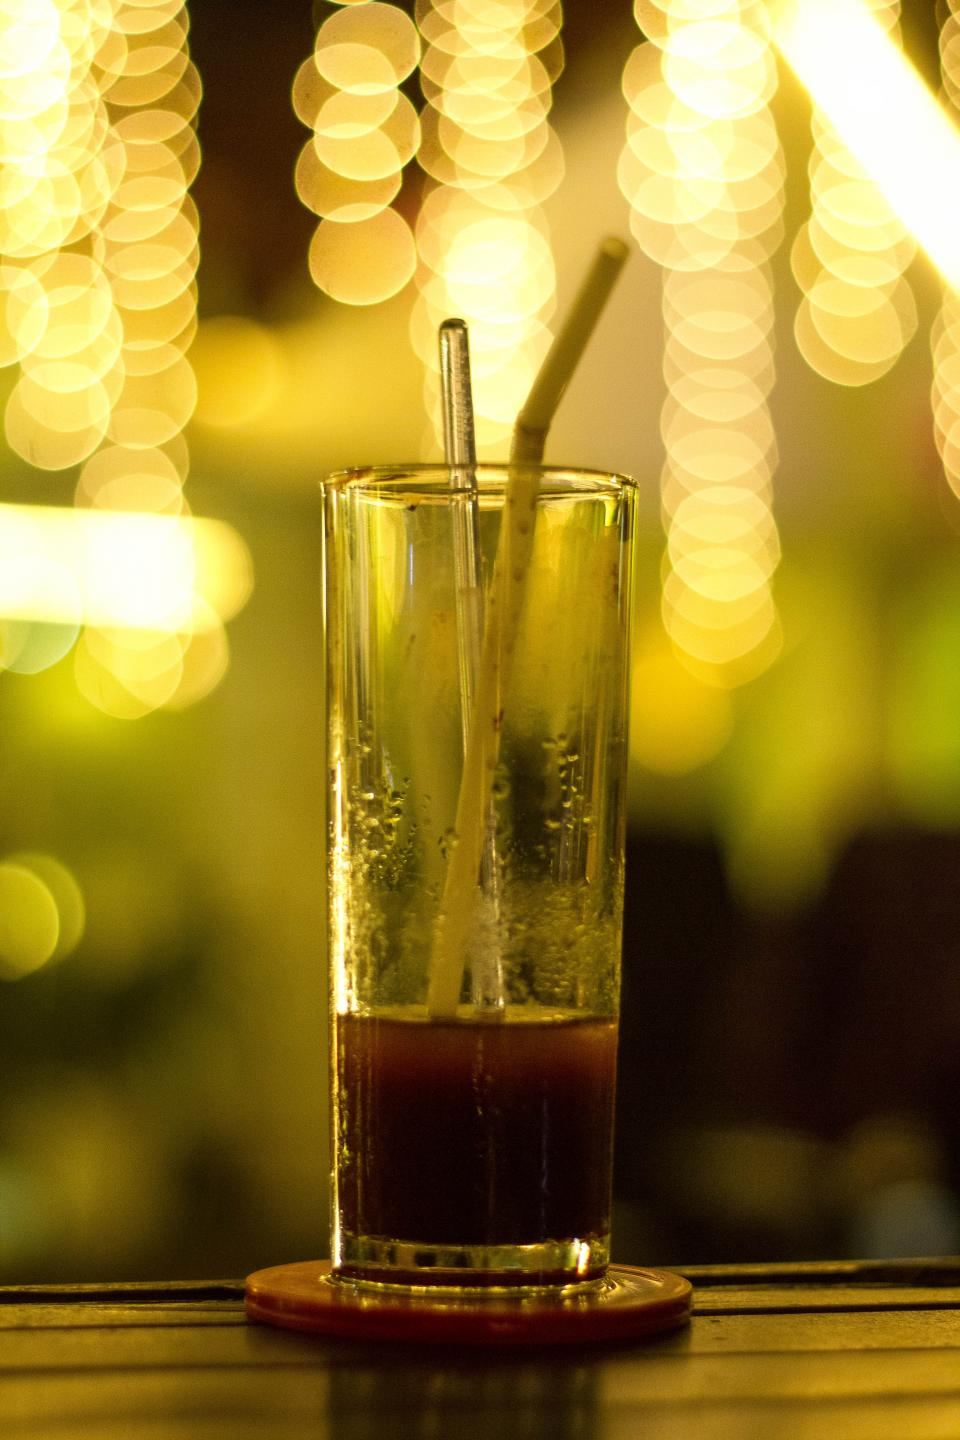 drink juice bar lights bokeh